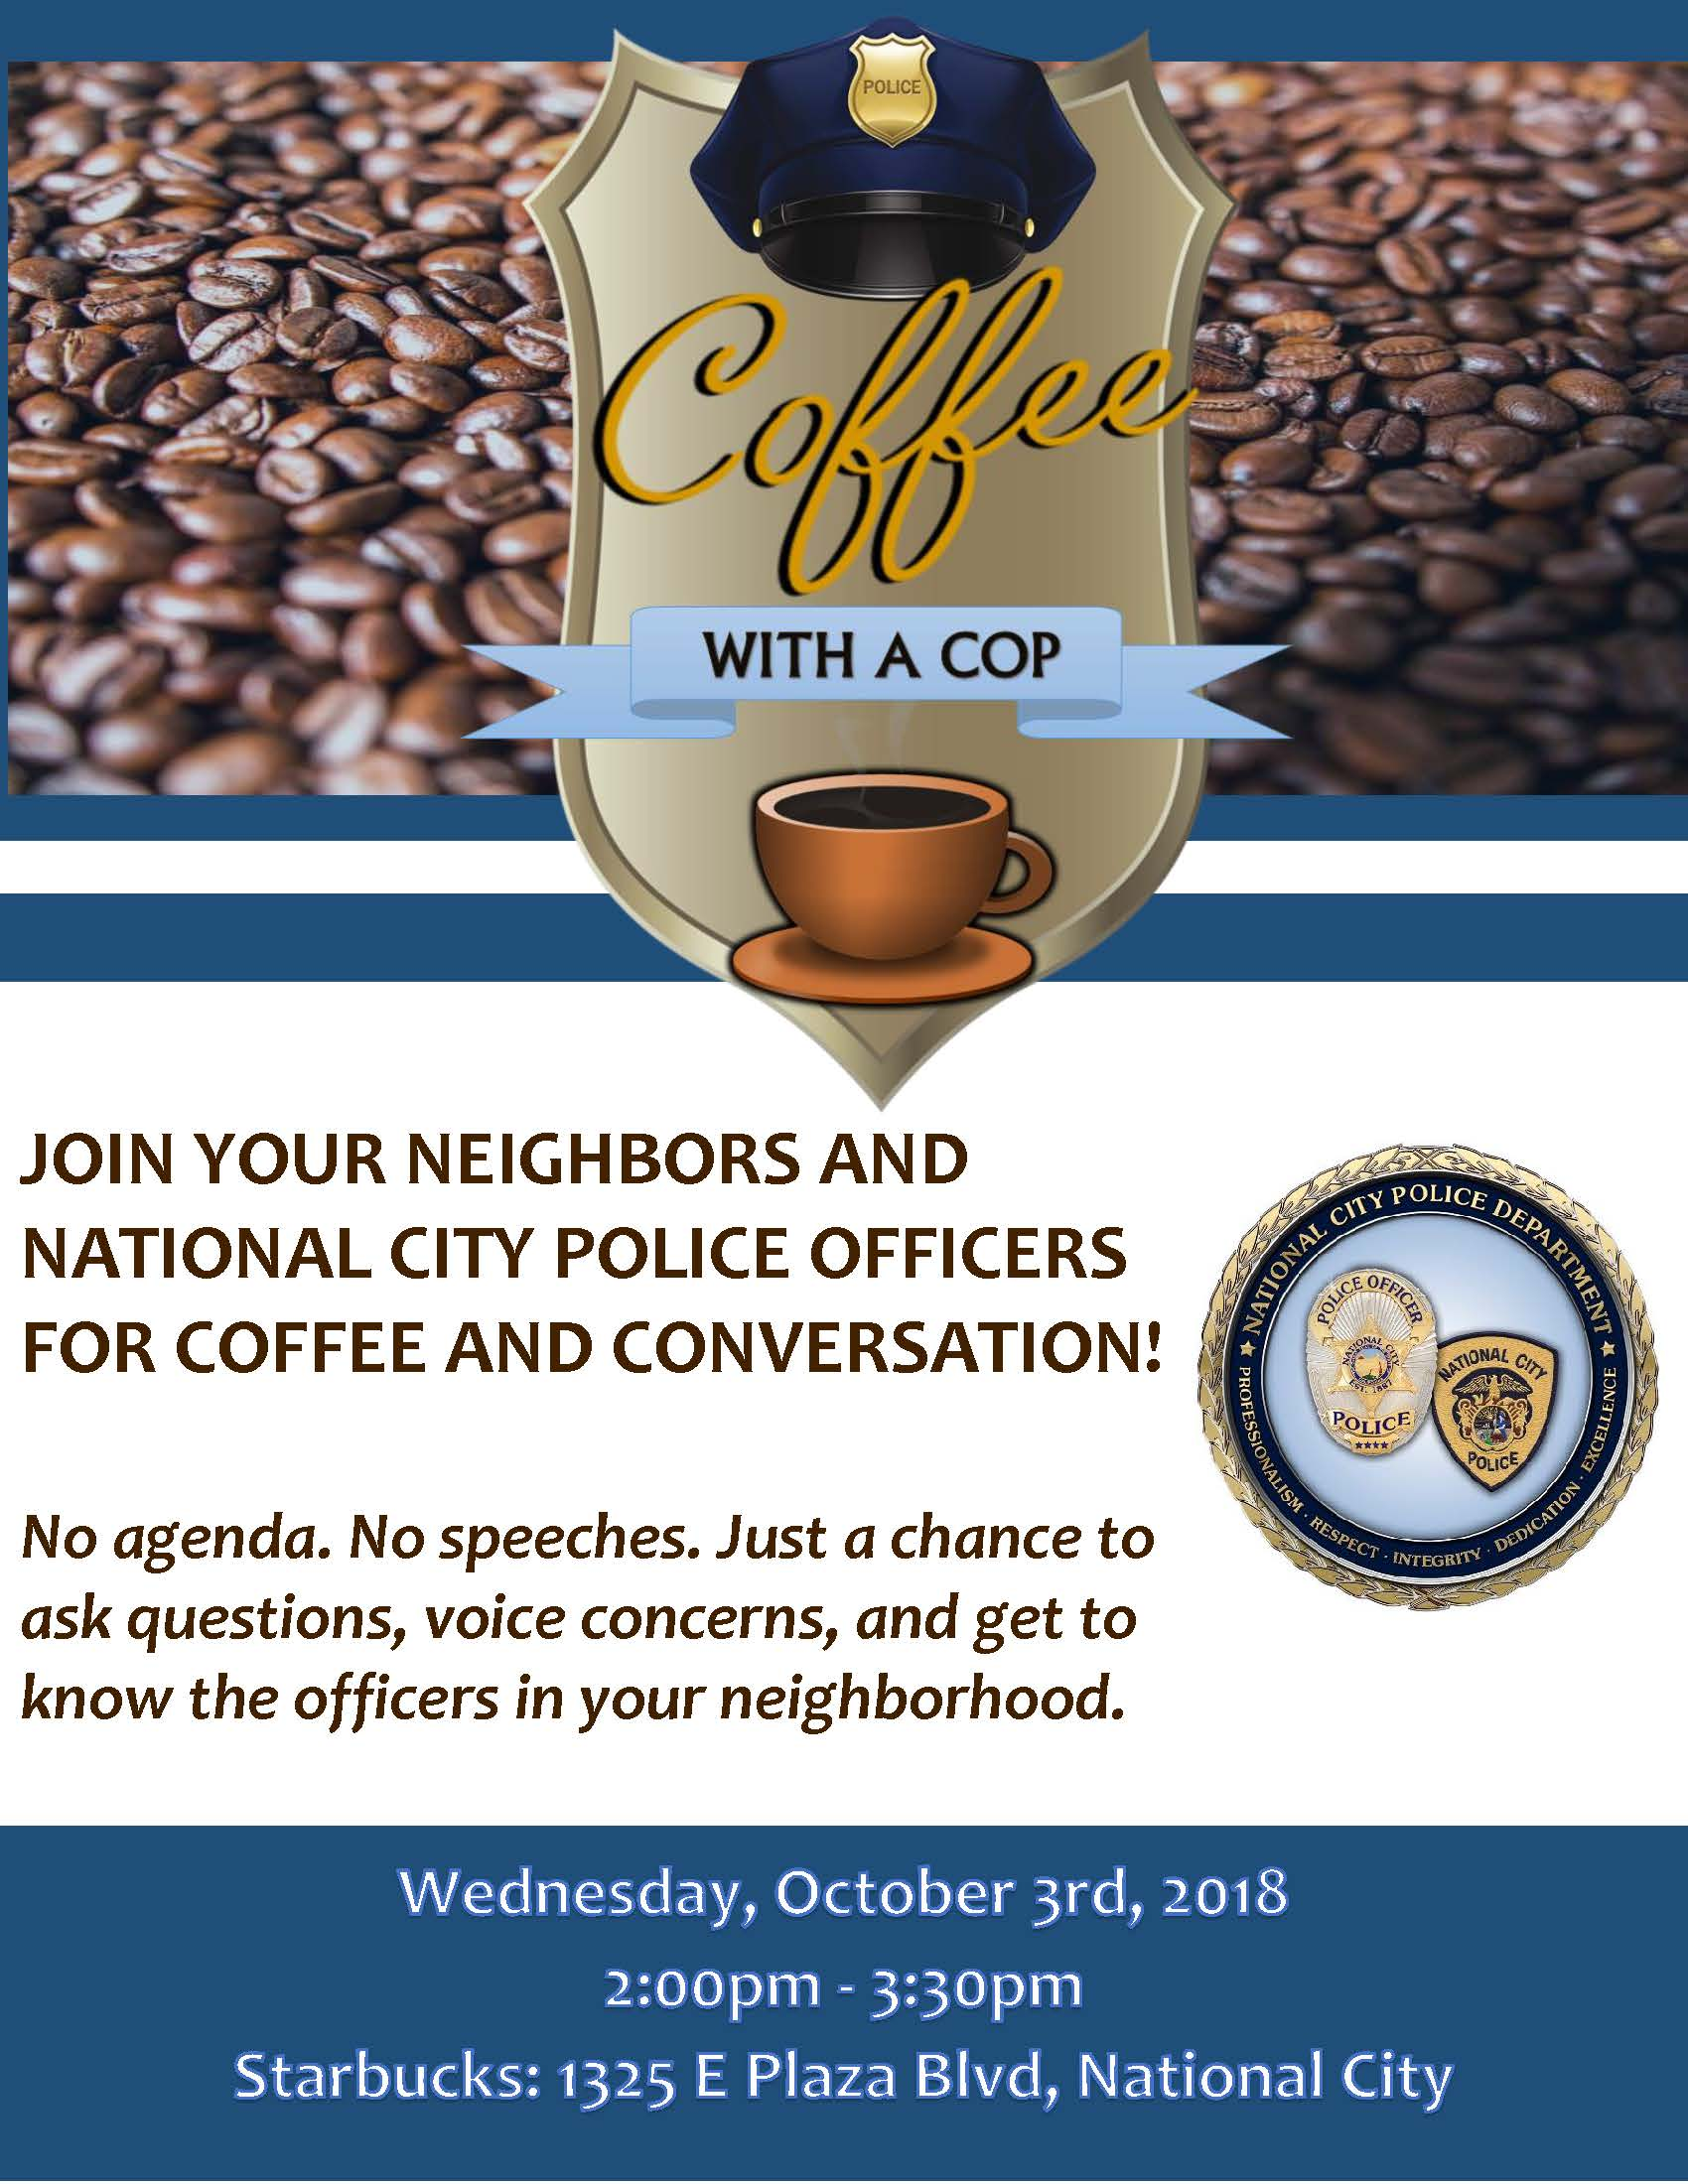 Cofee With A Cop- October 2018- E Plaza Blvd